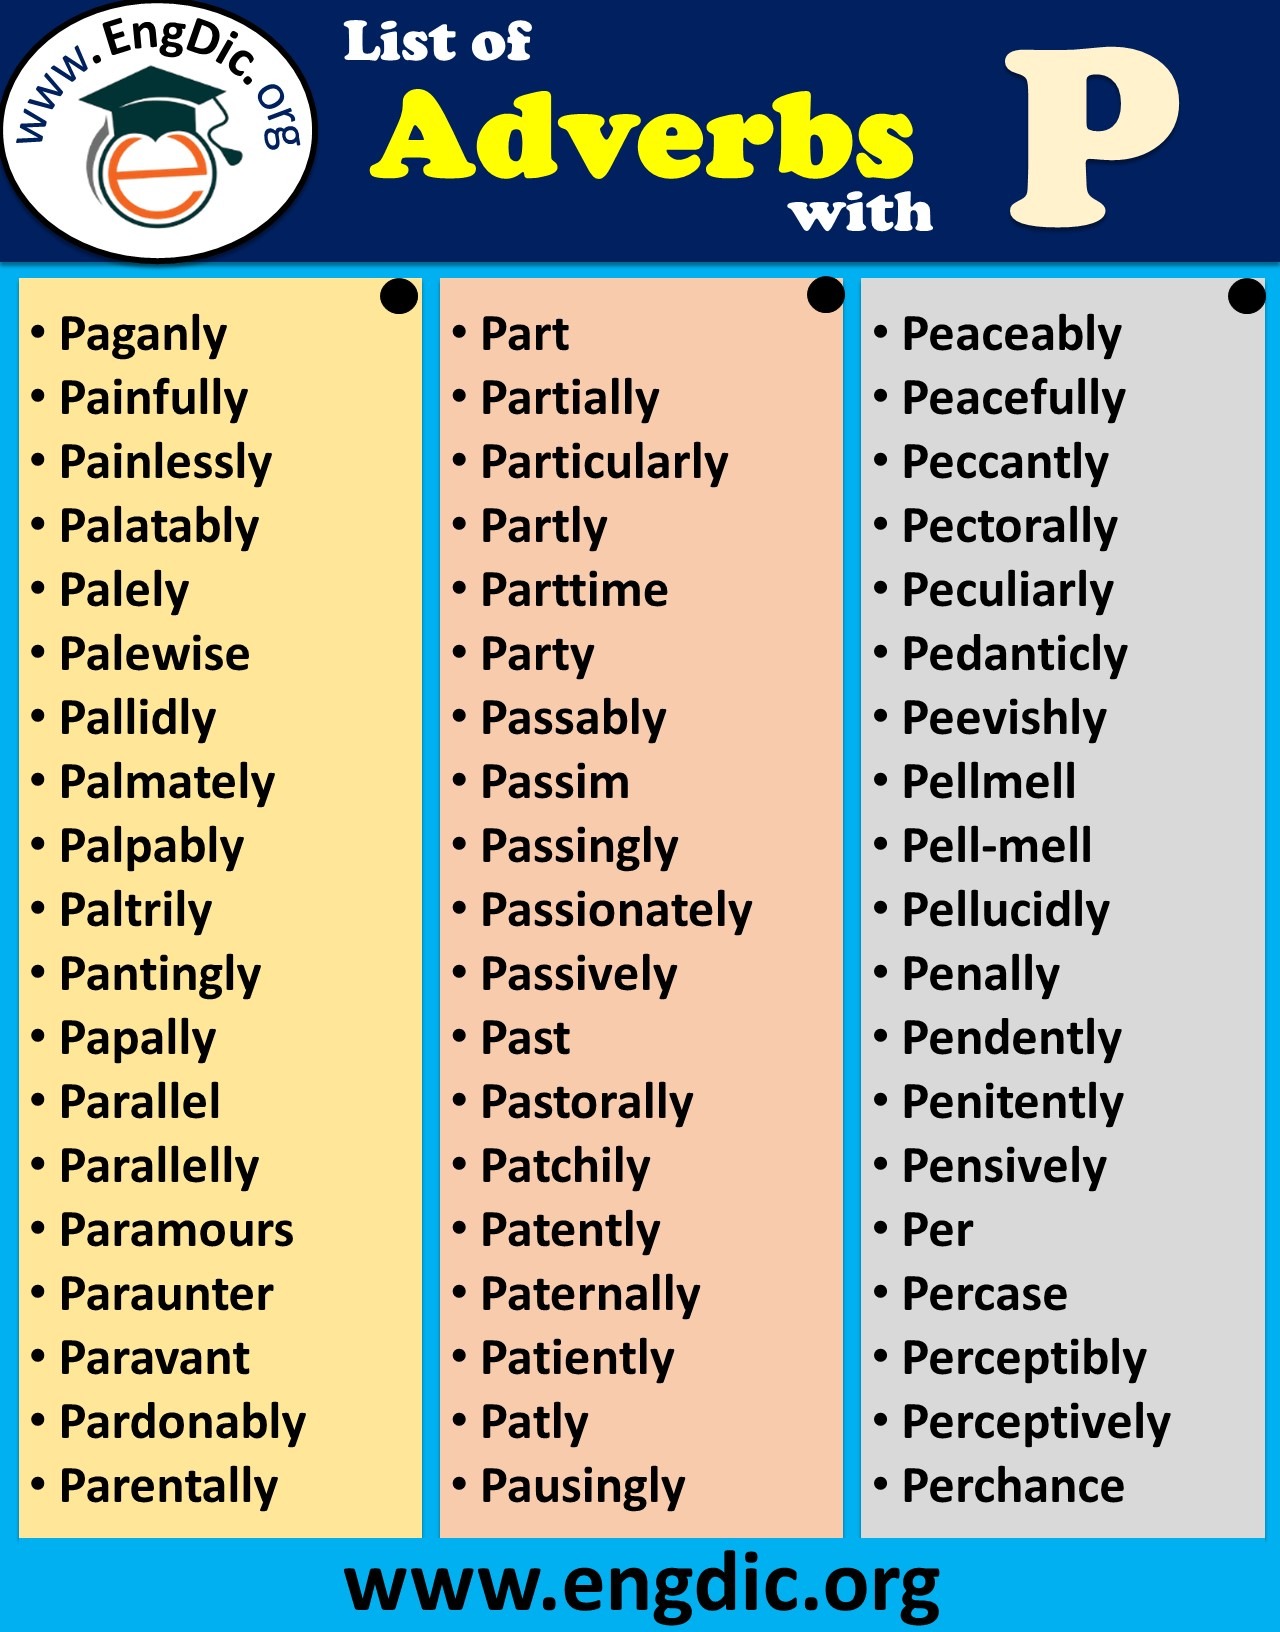 adverbs starting with p